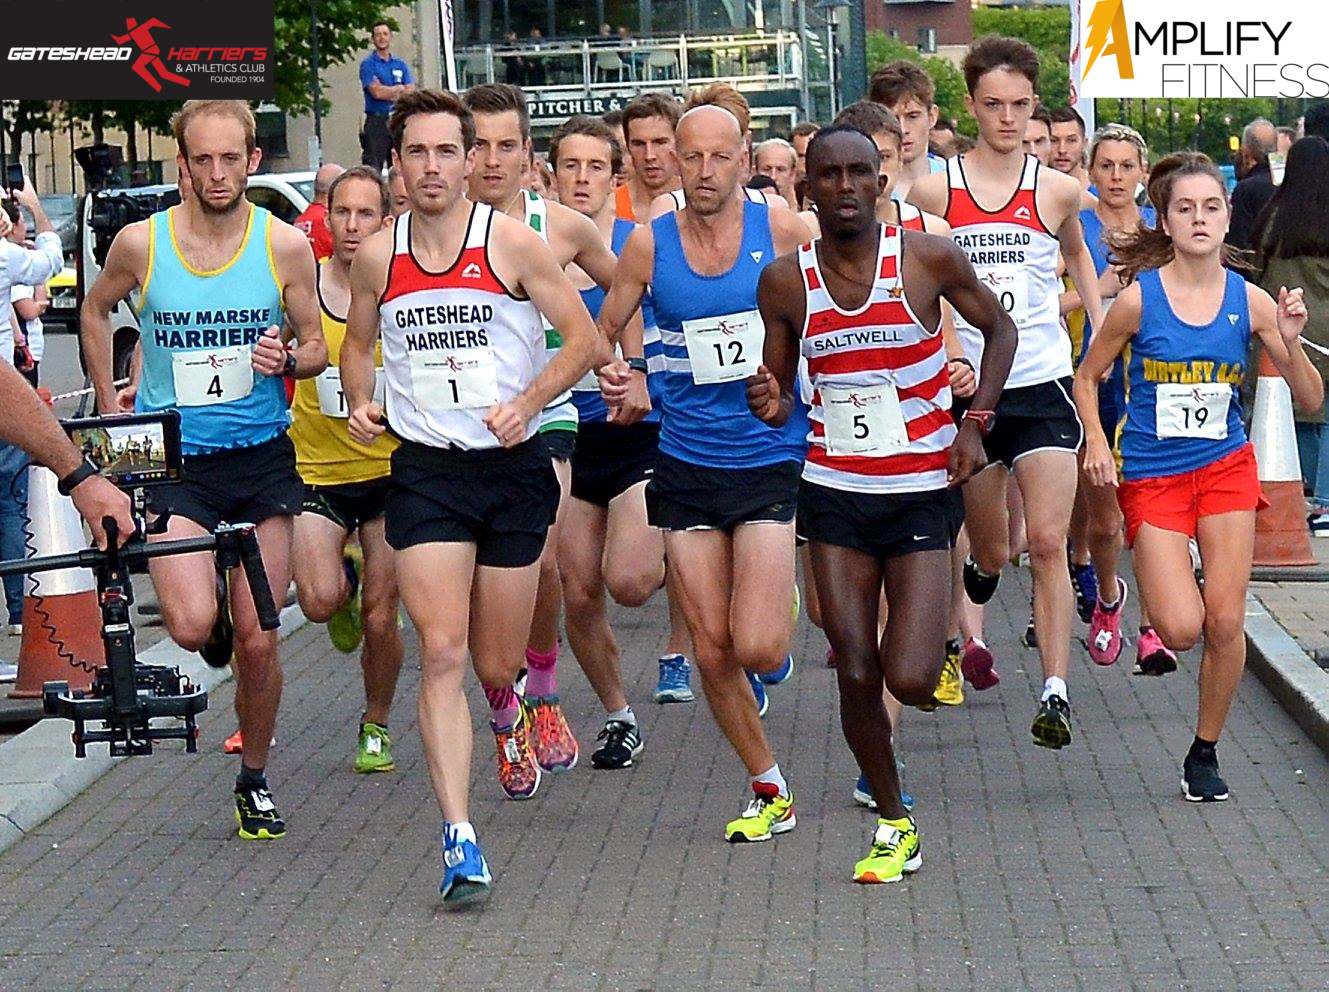 quayside 5k live results